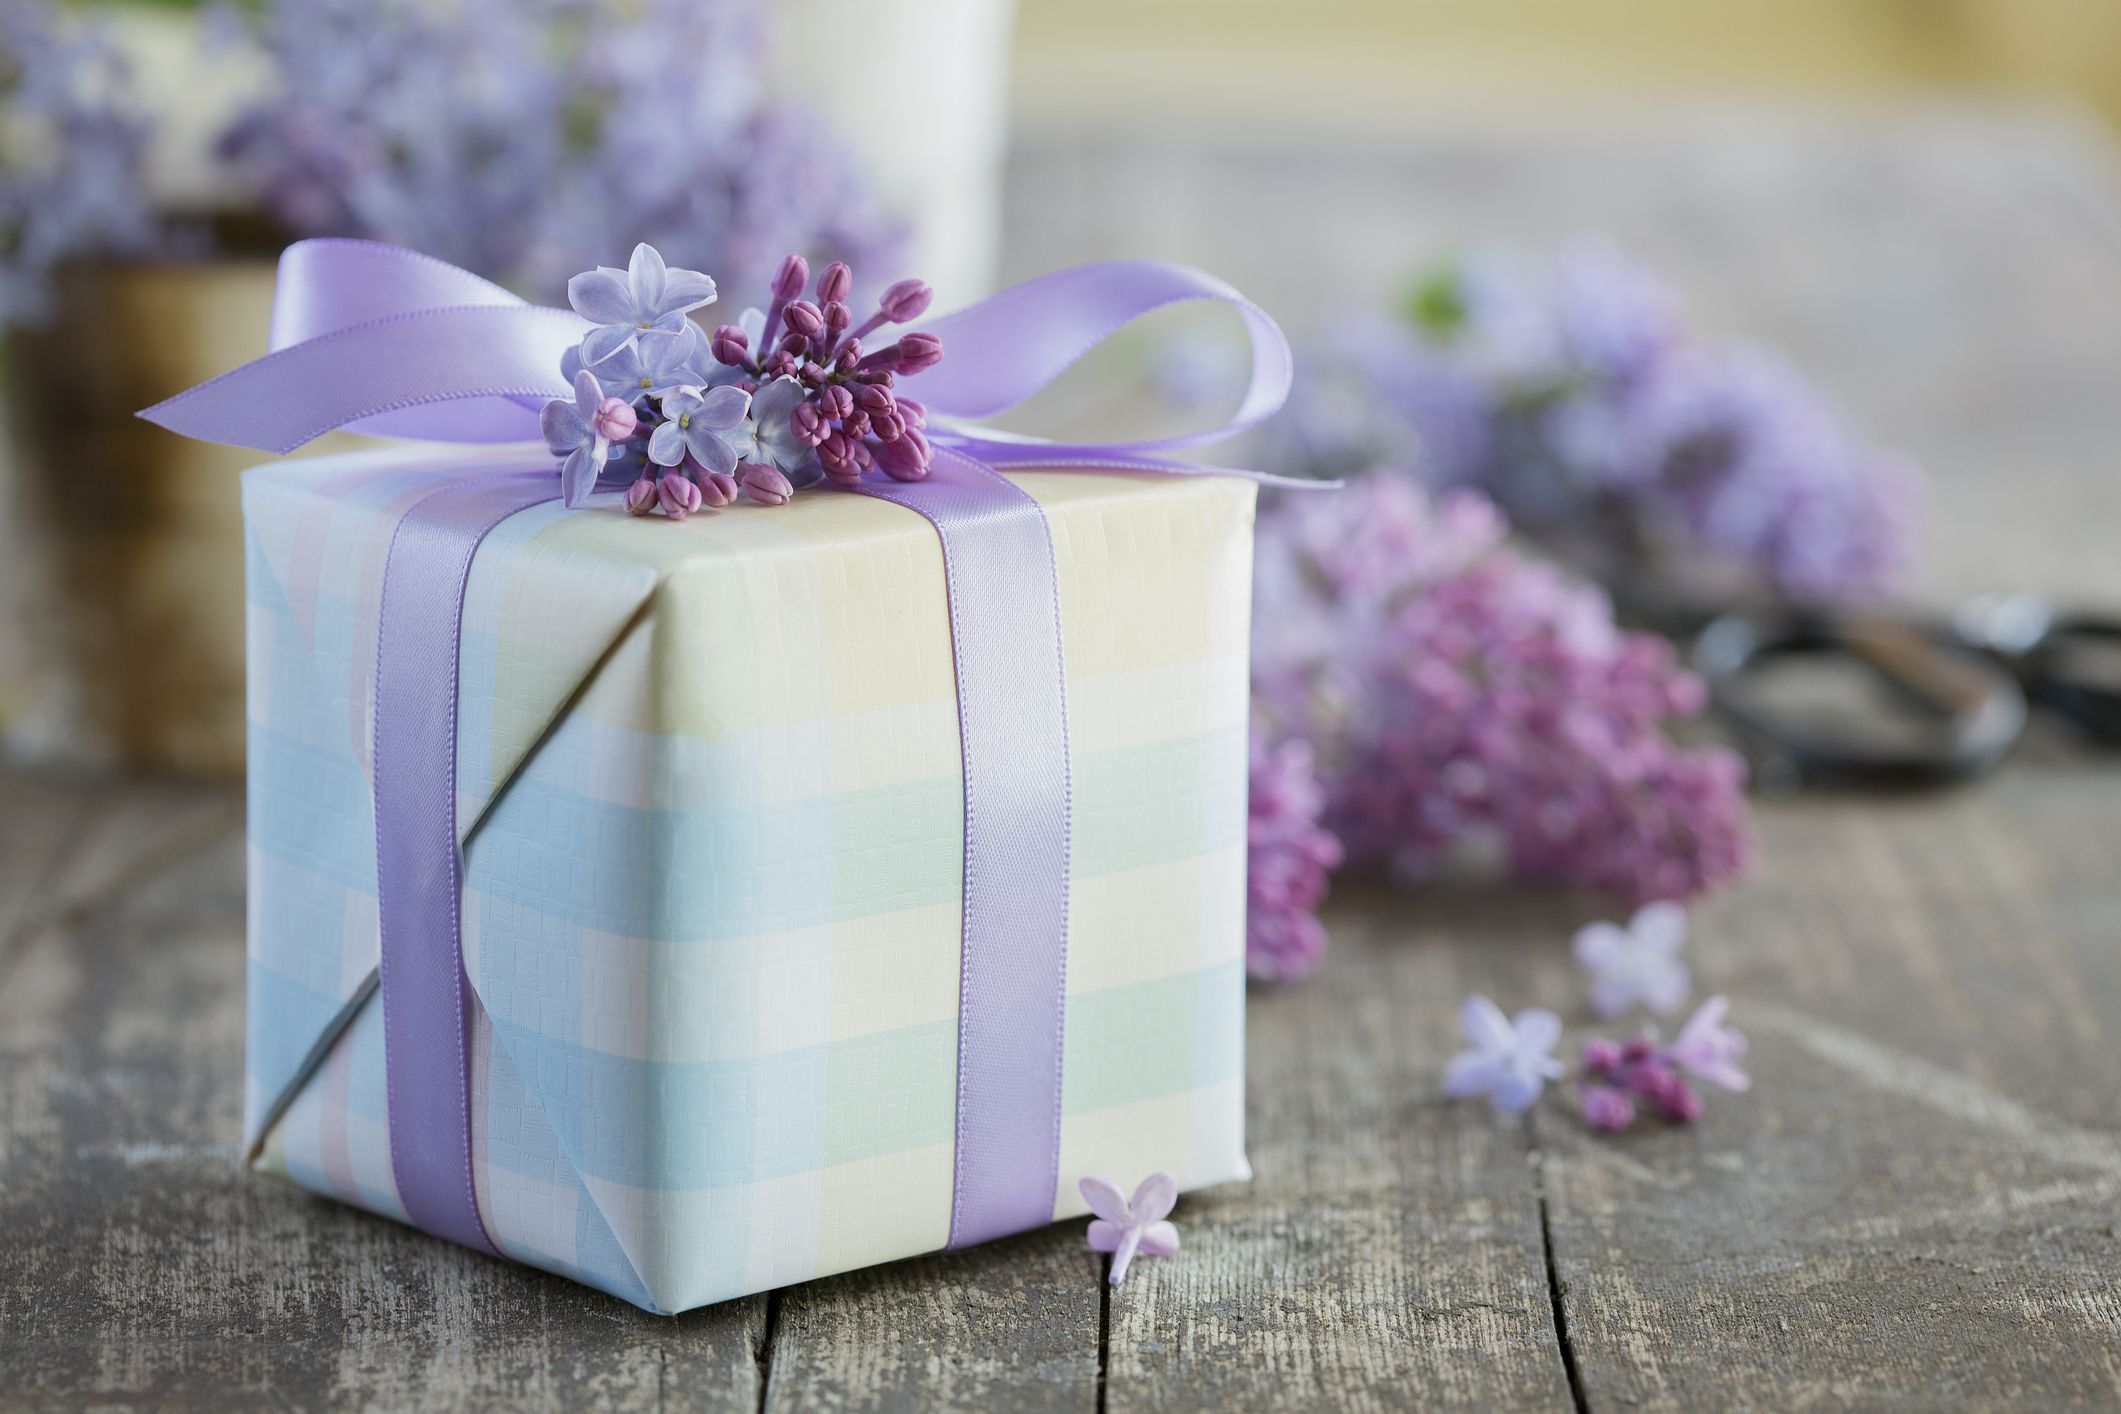 Guide How Much to Spend on a Wedding Gift